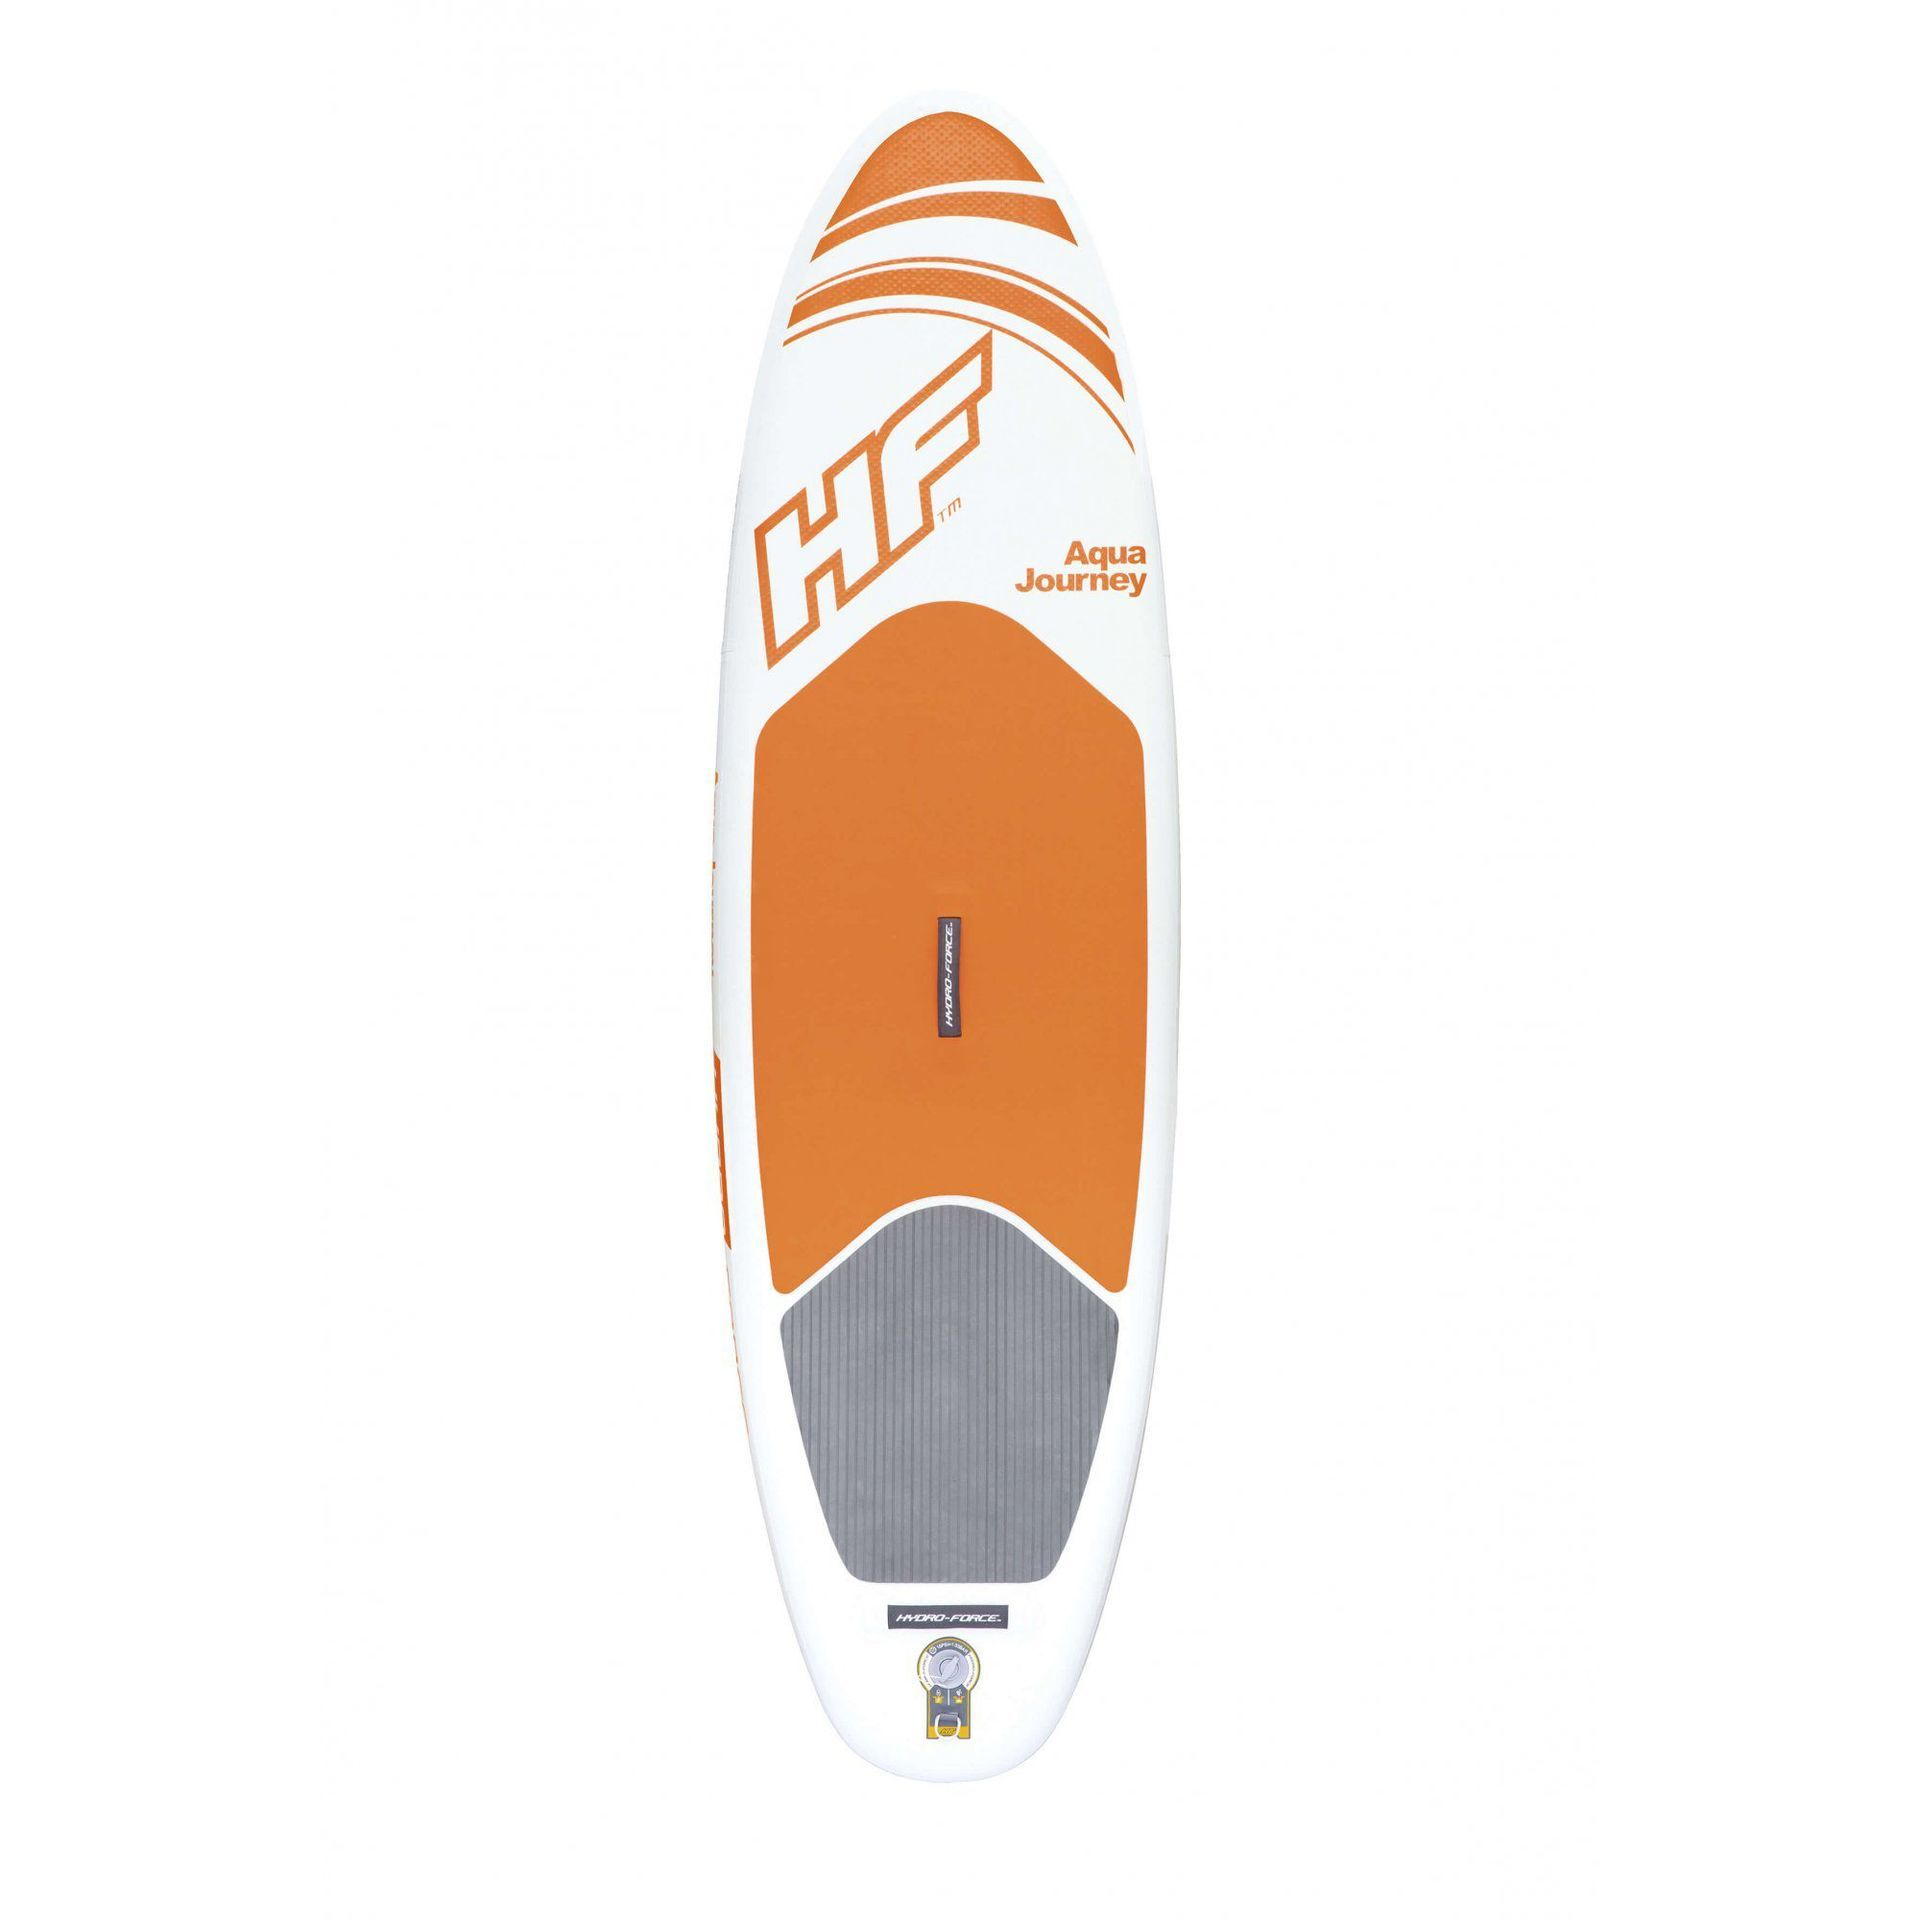 DESKA SUP HYDRO FORCE AQUA JOURNEY 1